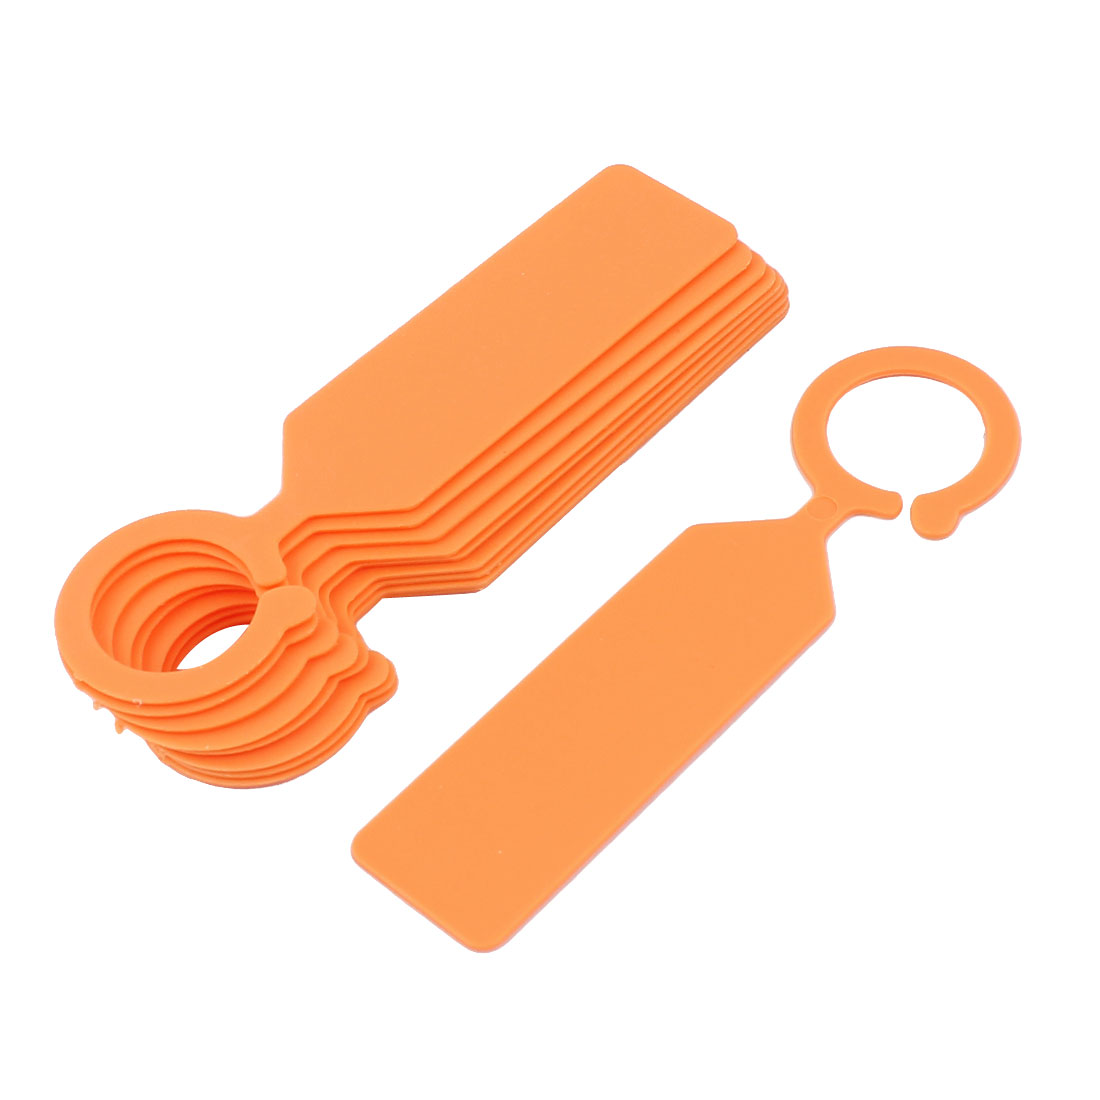 Plastic Hook Nursery Garden Plant Seed Hanging Tag Label Marker Orange 10Pcs